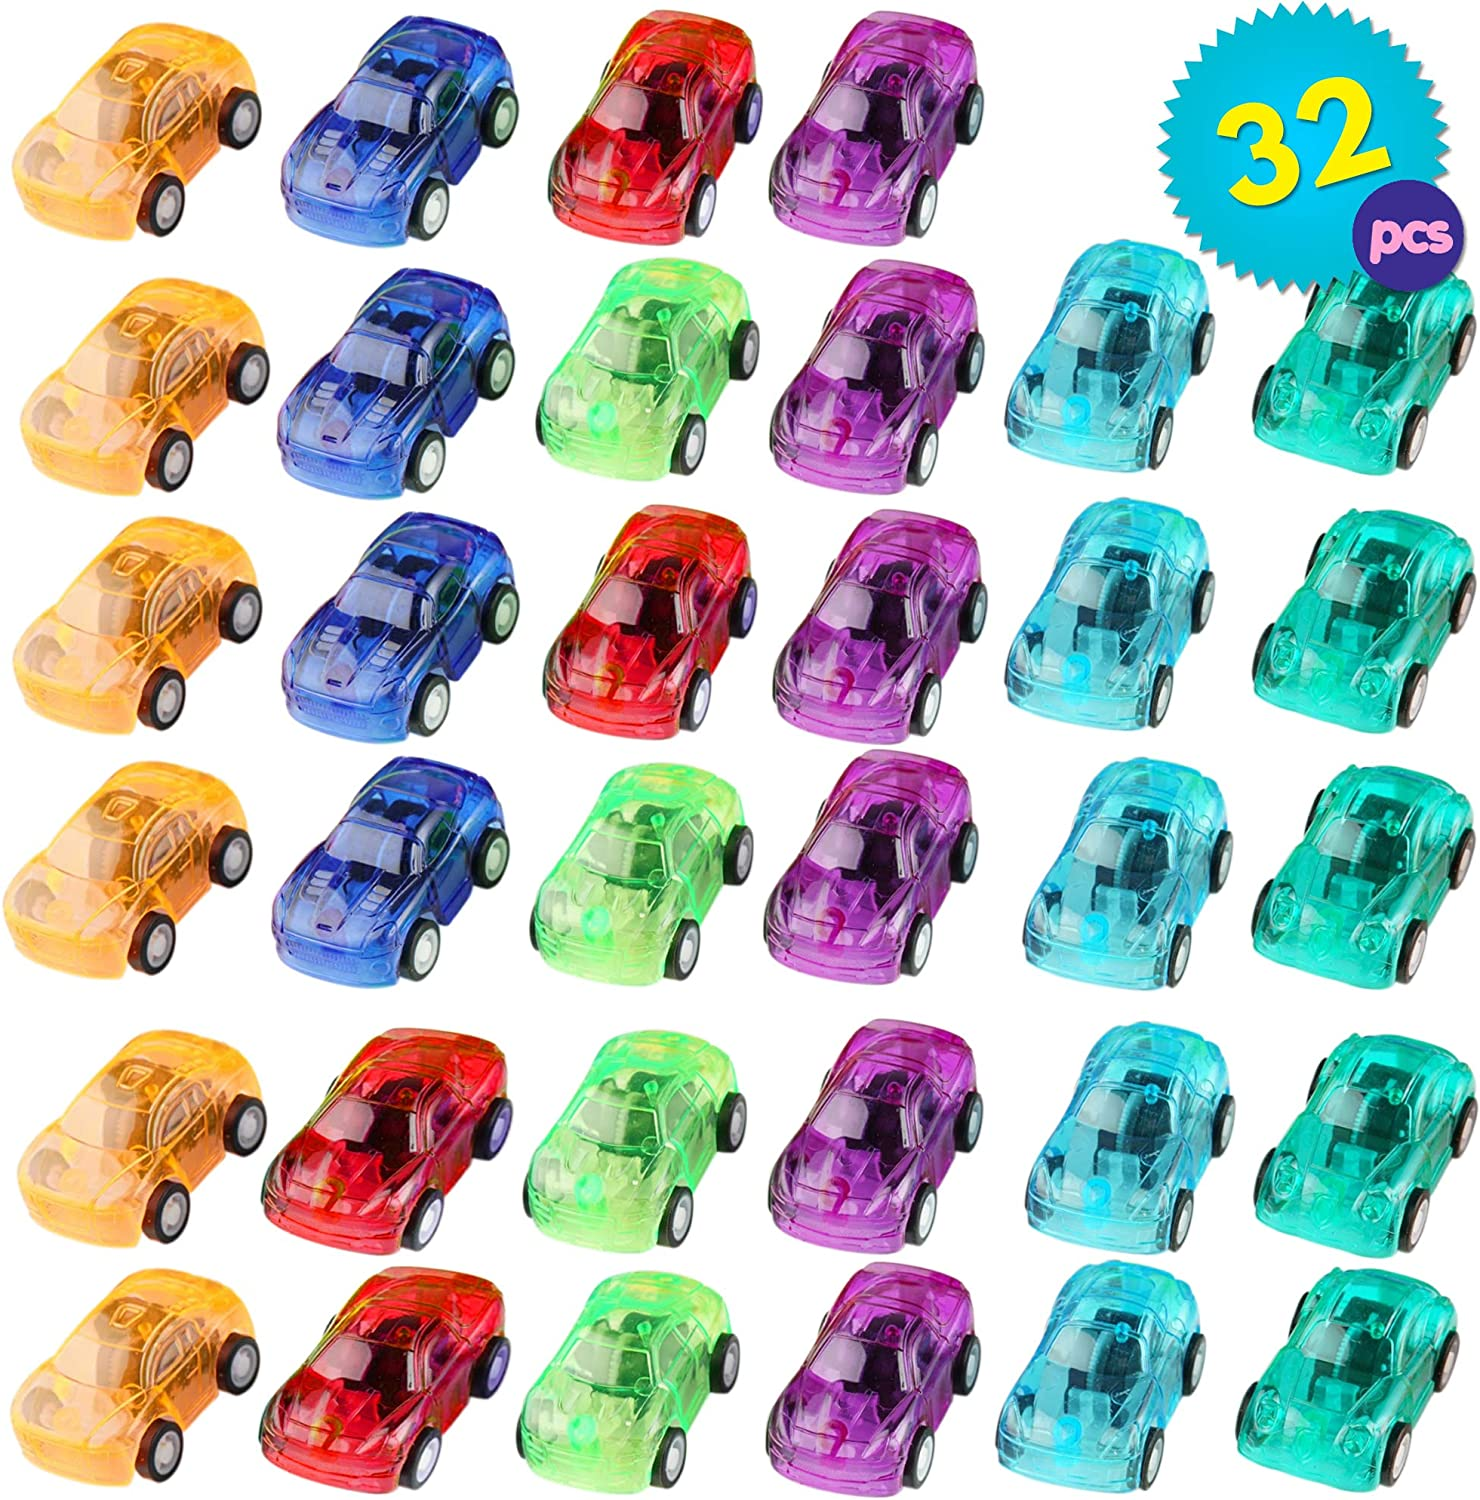 THE TWIDDLERS 32 Mini Pull Back Race Cars | Party Bag Filler Toys Push and Go Friction Vehicles Bulk Play Set Plastic Toy Car | Cake Topper Decoration